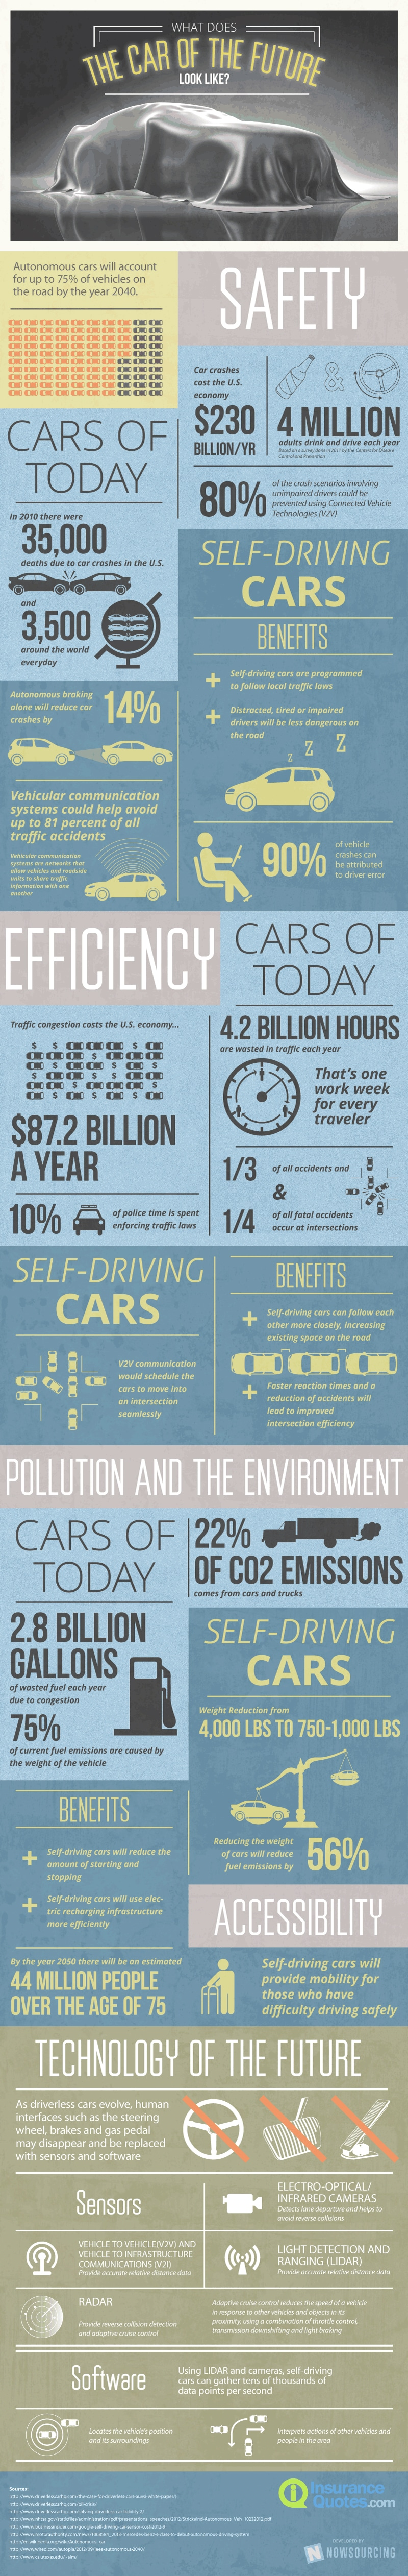 driverless-cars-of-future-infographic